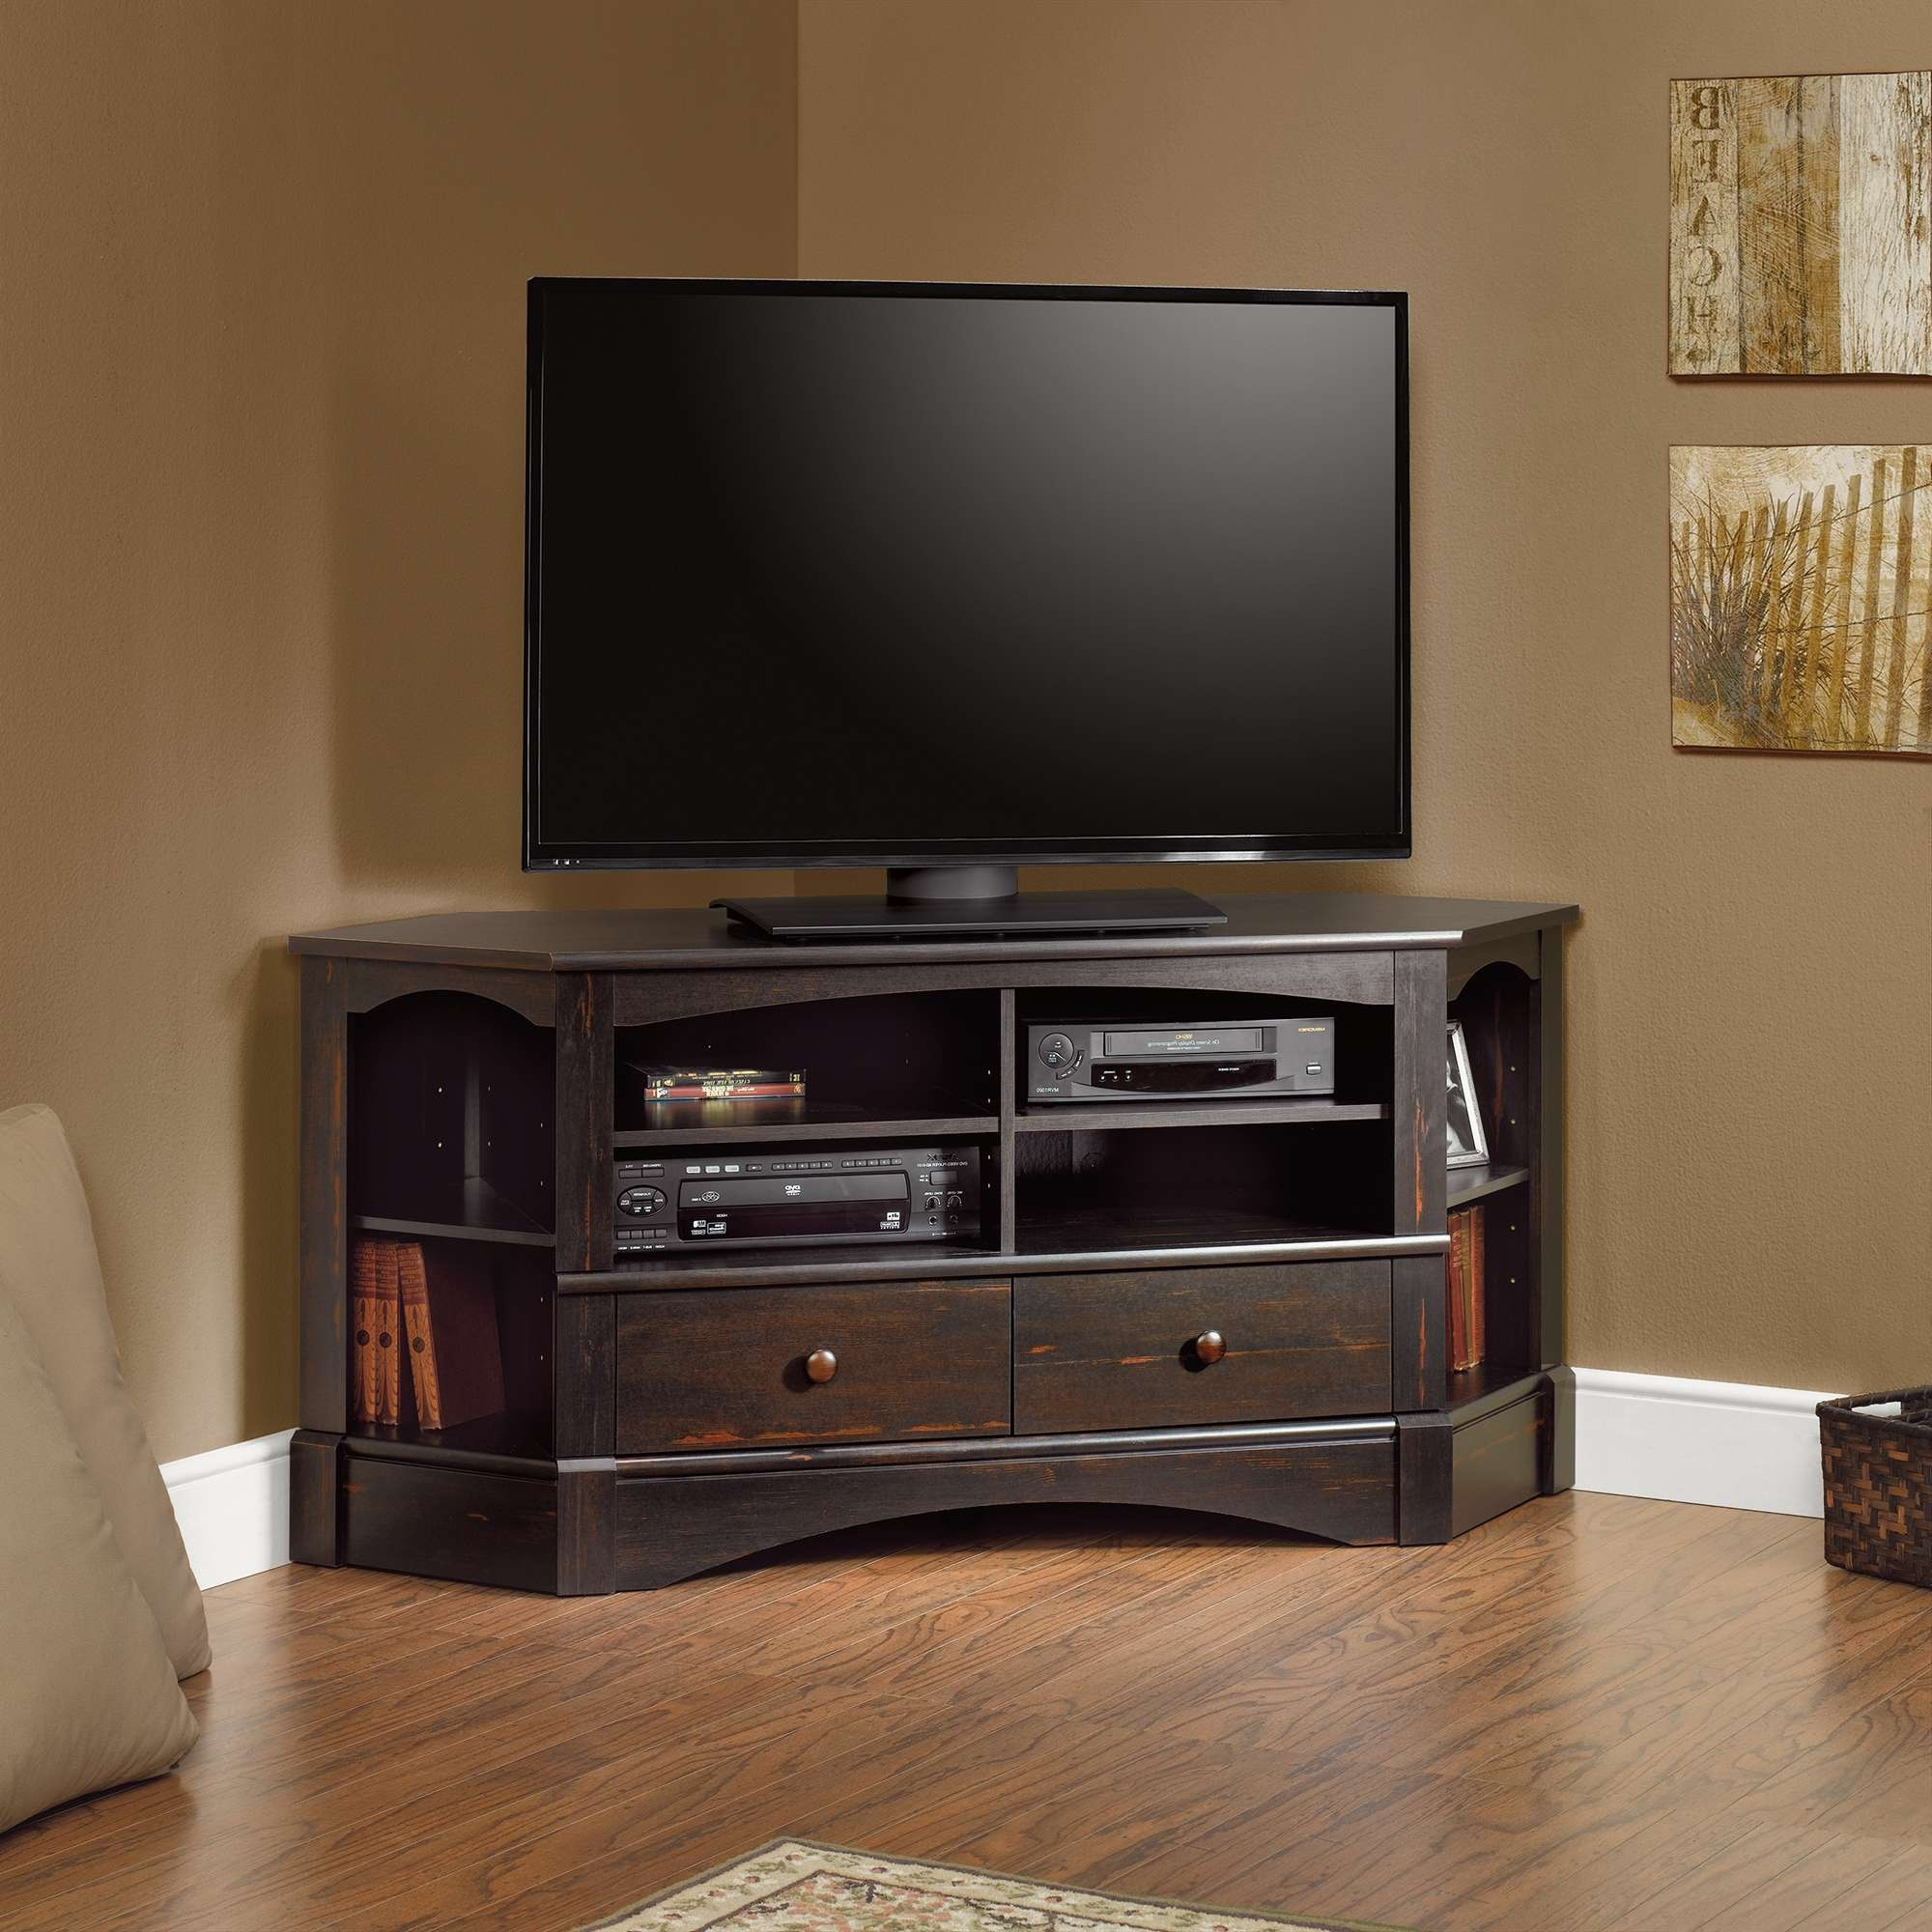 Small Wooden Corner Tv Stand Console Cabinet With Fireplace With Small Corner Tv Cabinets (View 19 of 20)